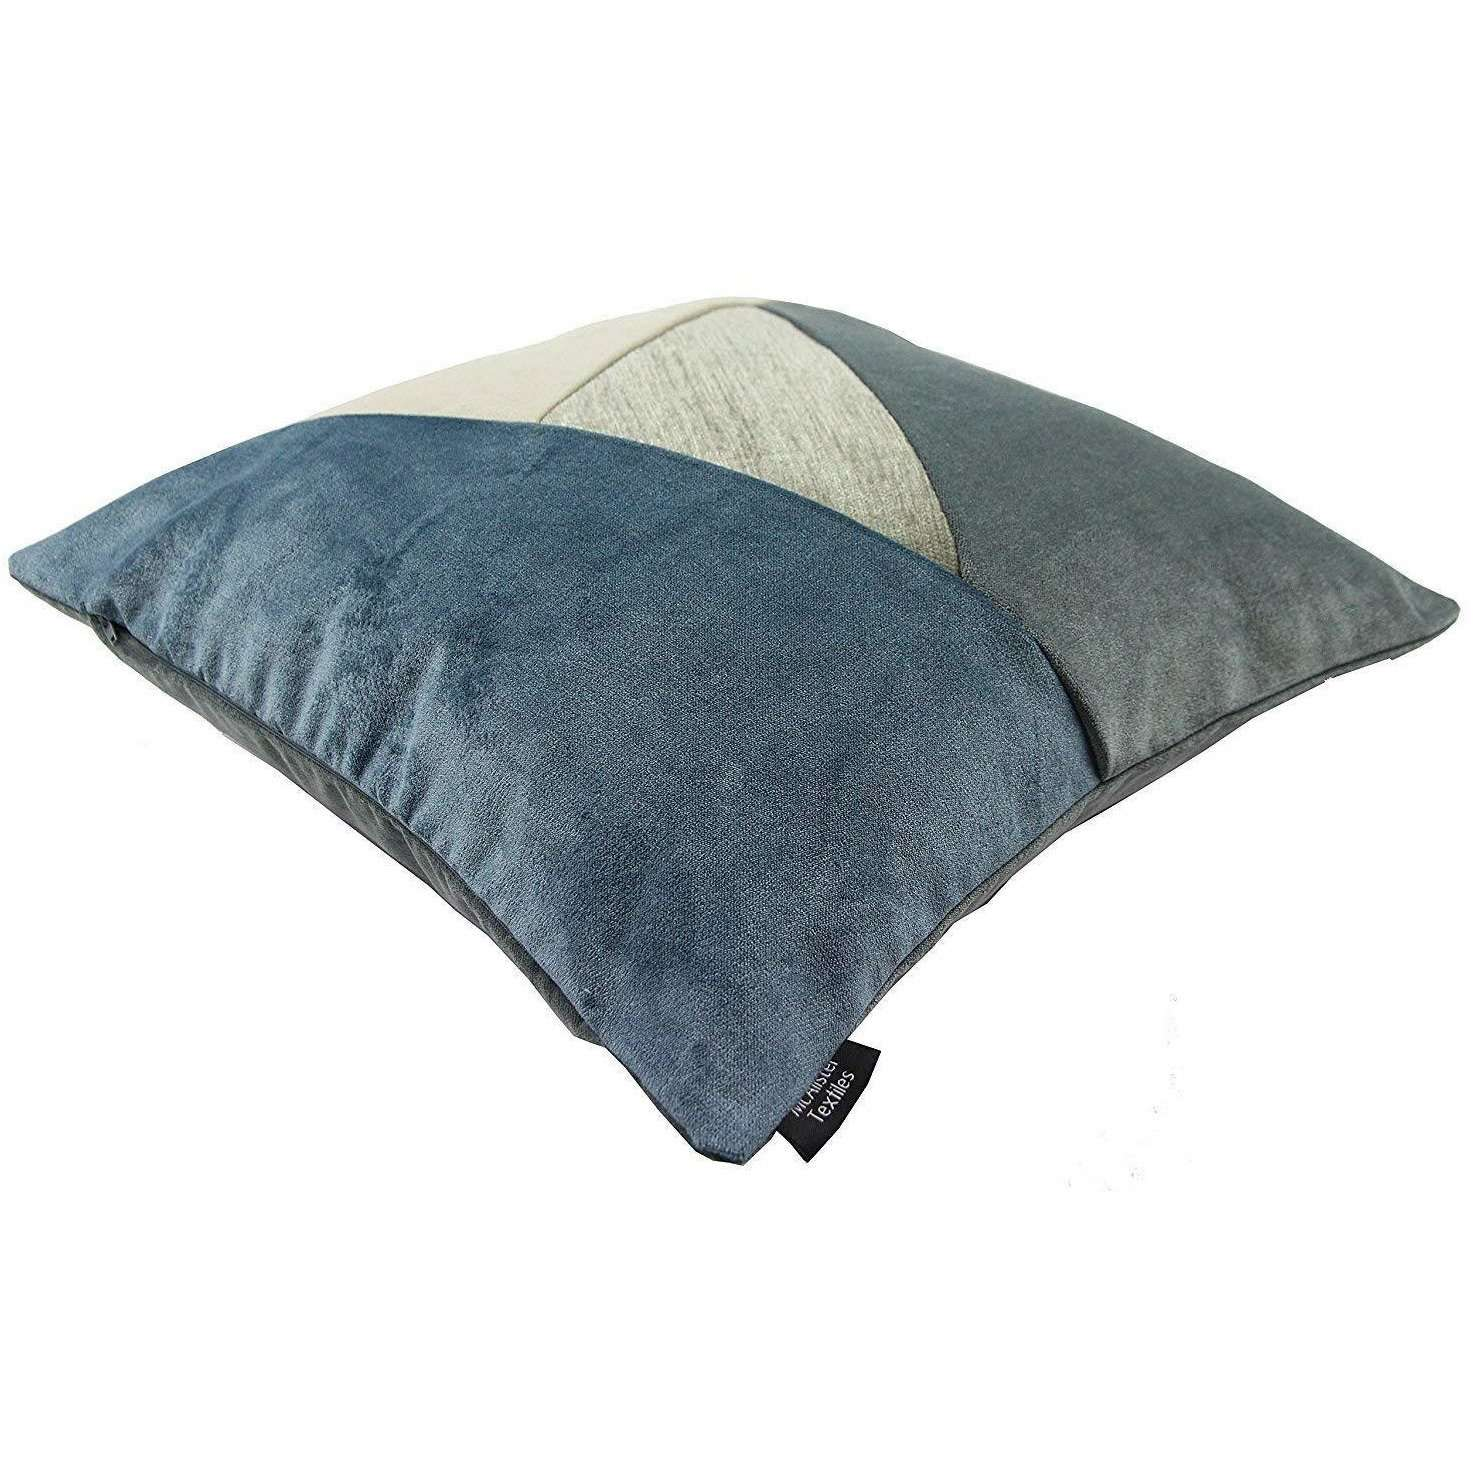 McAlister Textiles Patchwork Velvet Gold, Blue + Grey Cushion Set Cushions and Covers